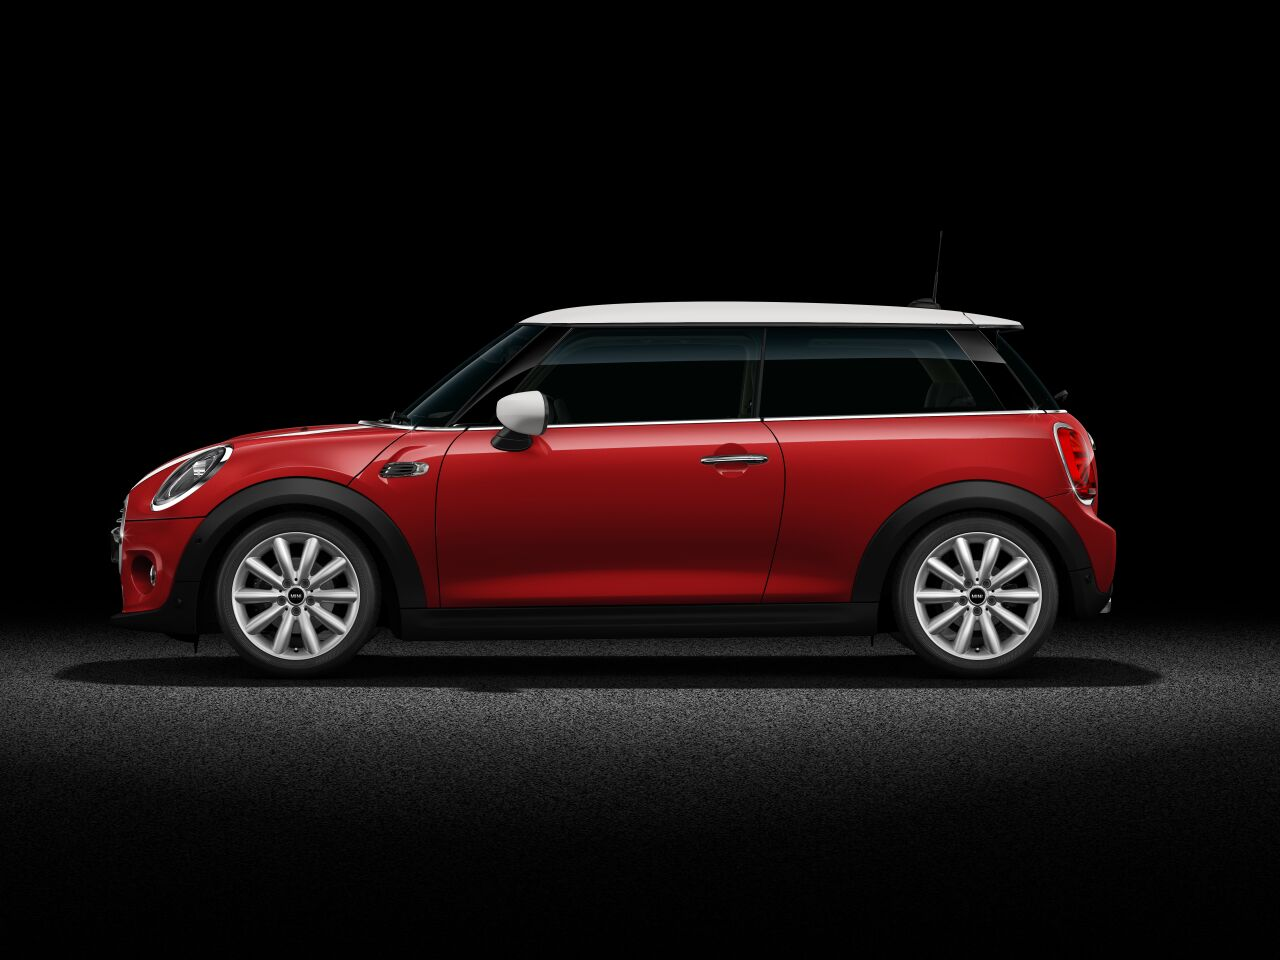 MINI Cooper 3 Door full body